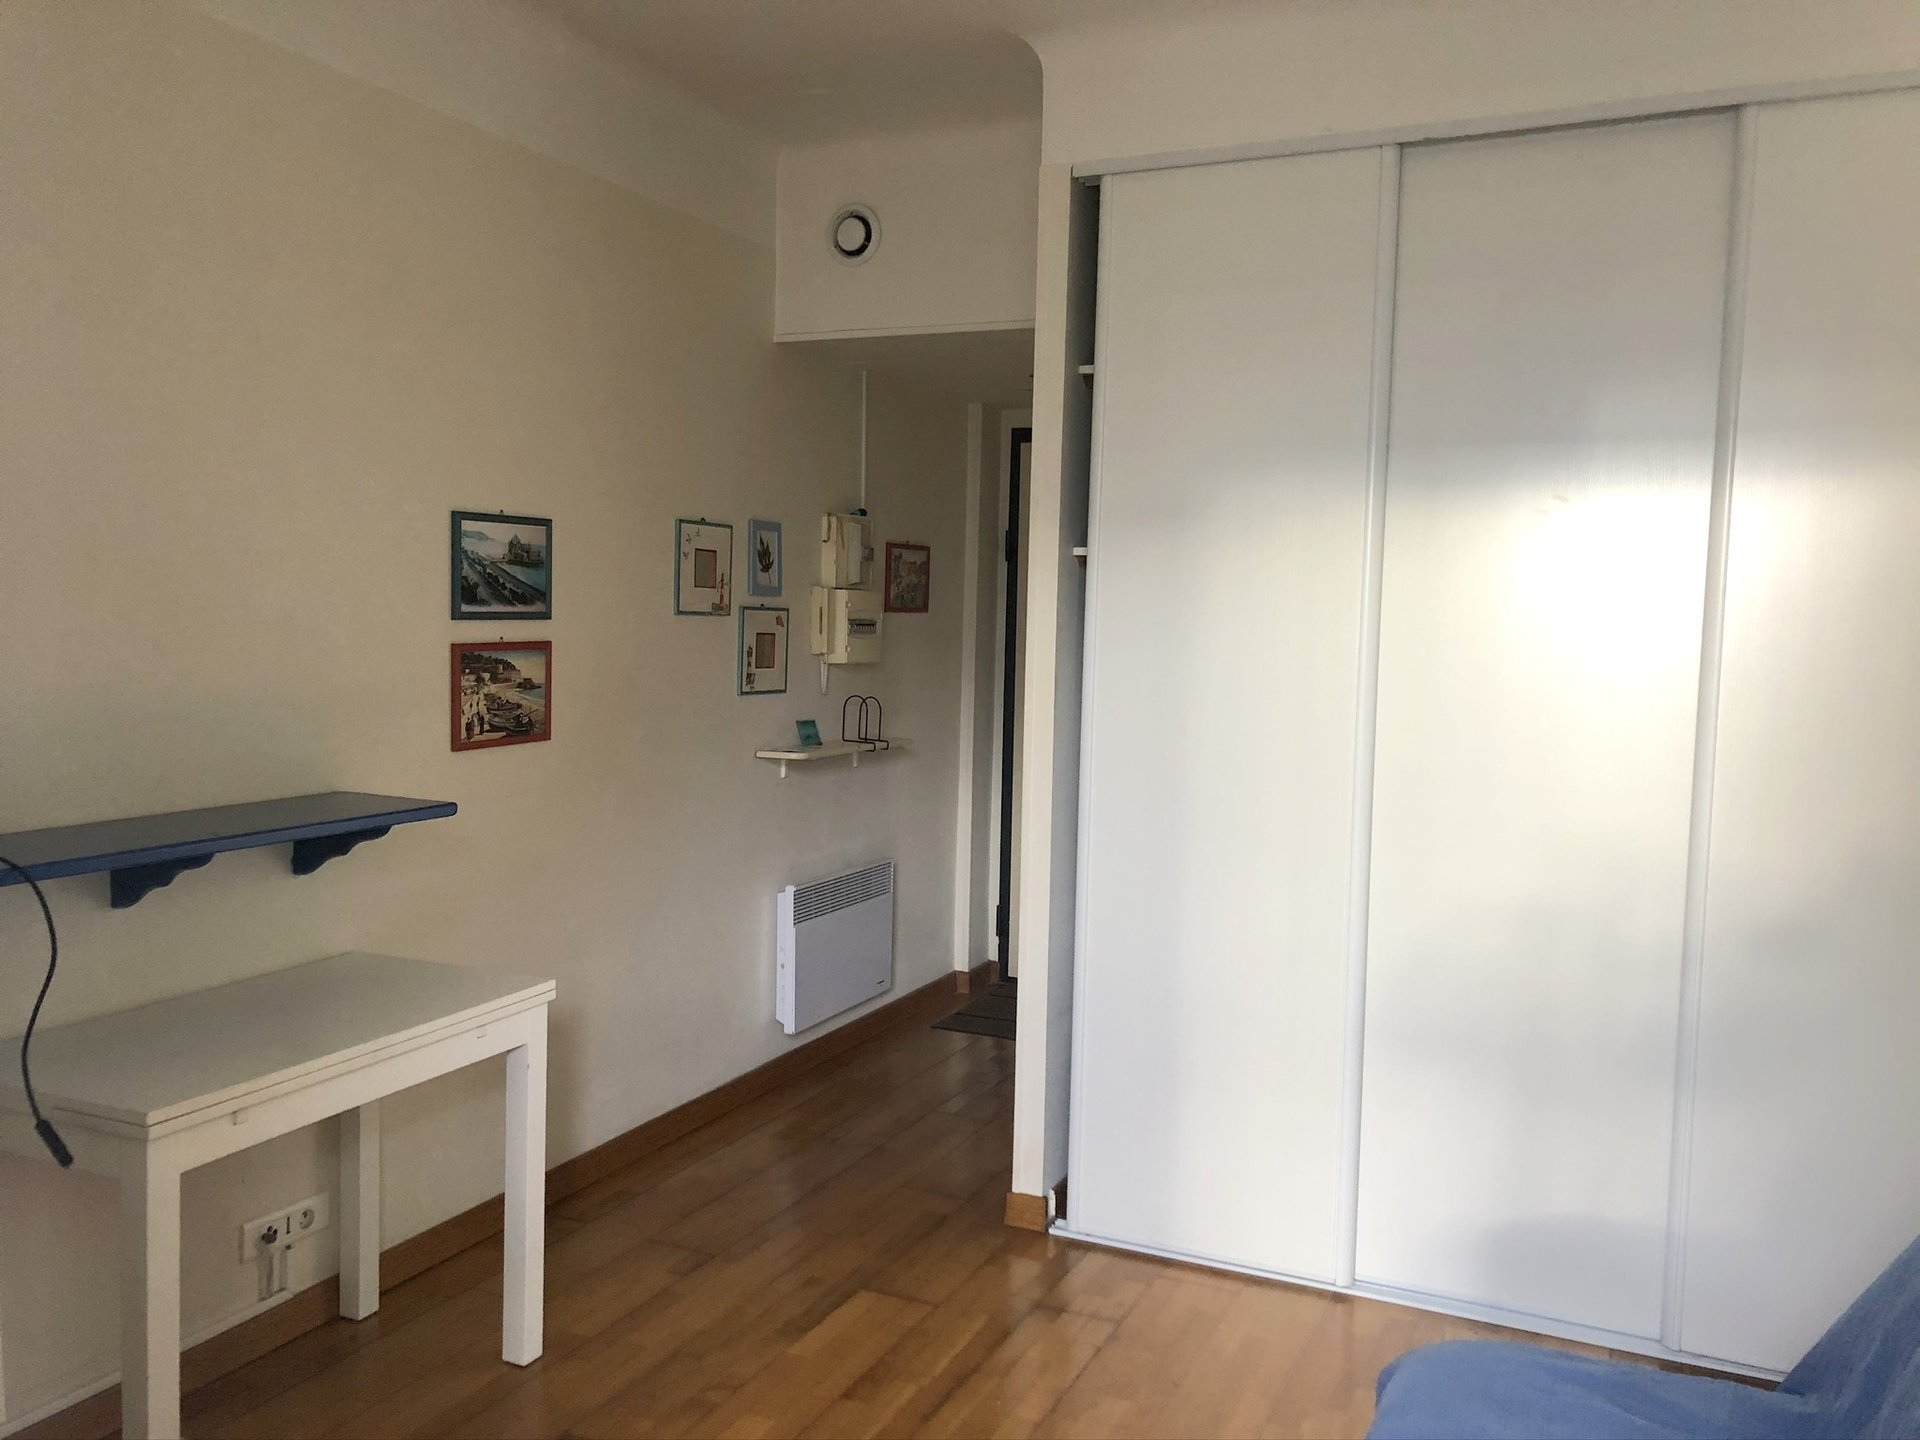 location Nice studio meublé 19,50m²  centre ville carré d'or